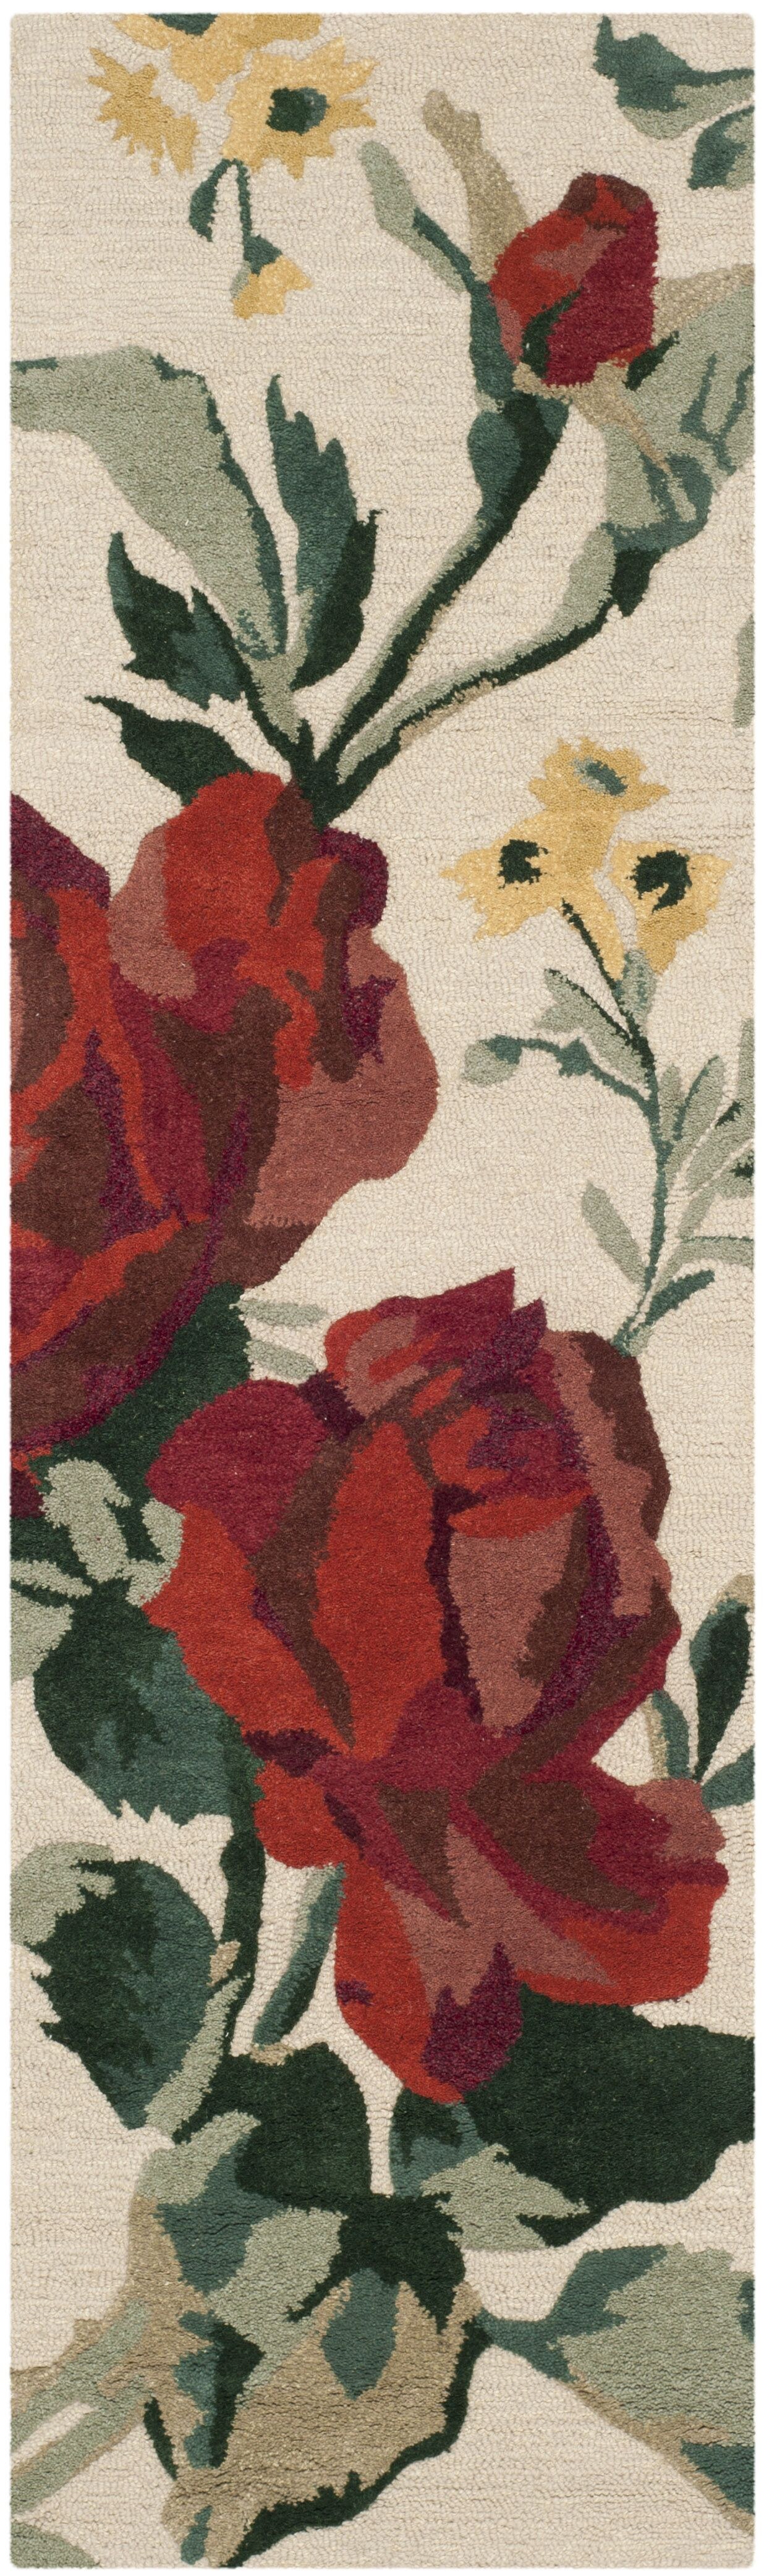 Rose Chintz Hand-Loomed Shortbread Area Rug Rug Size: Runner 2'3